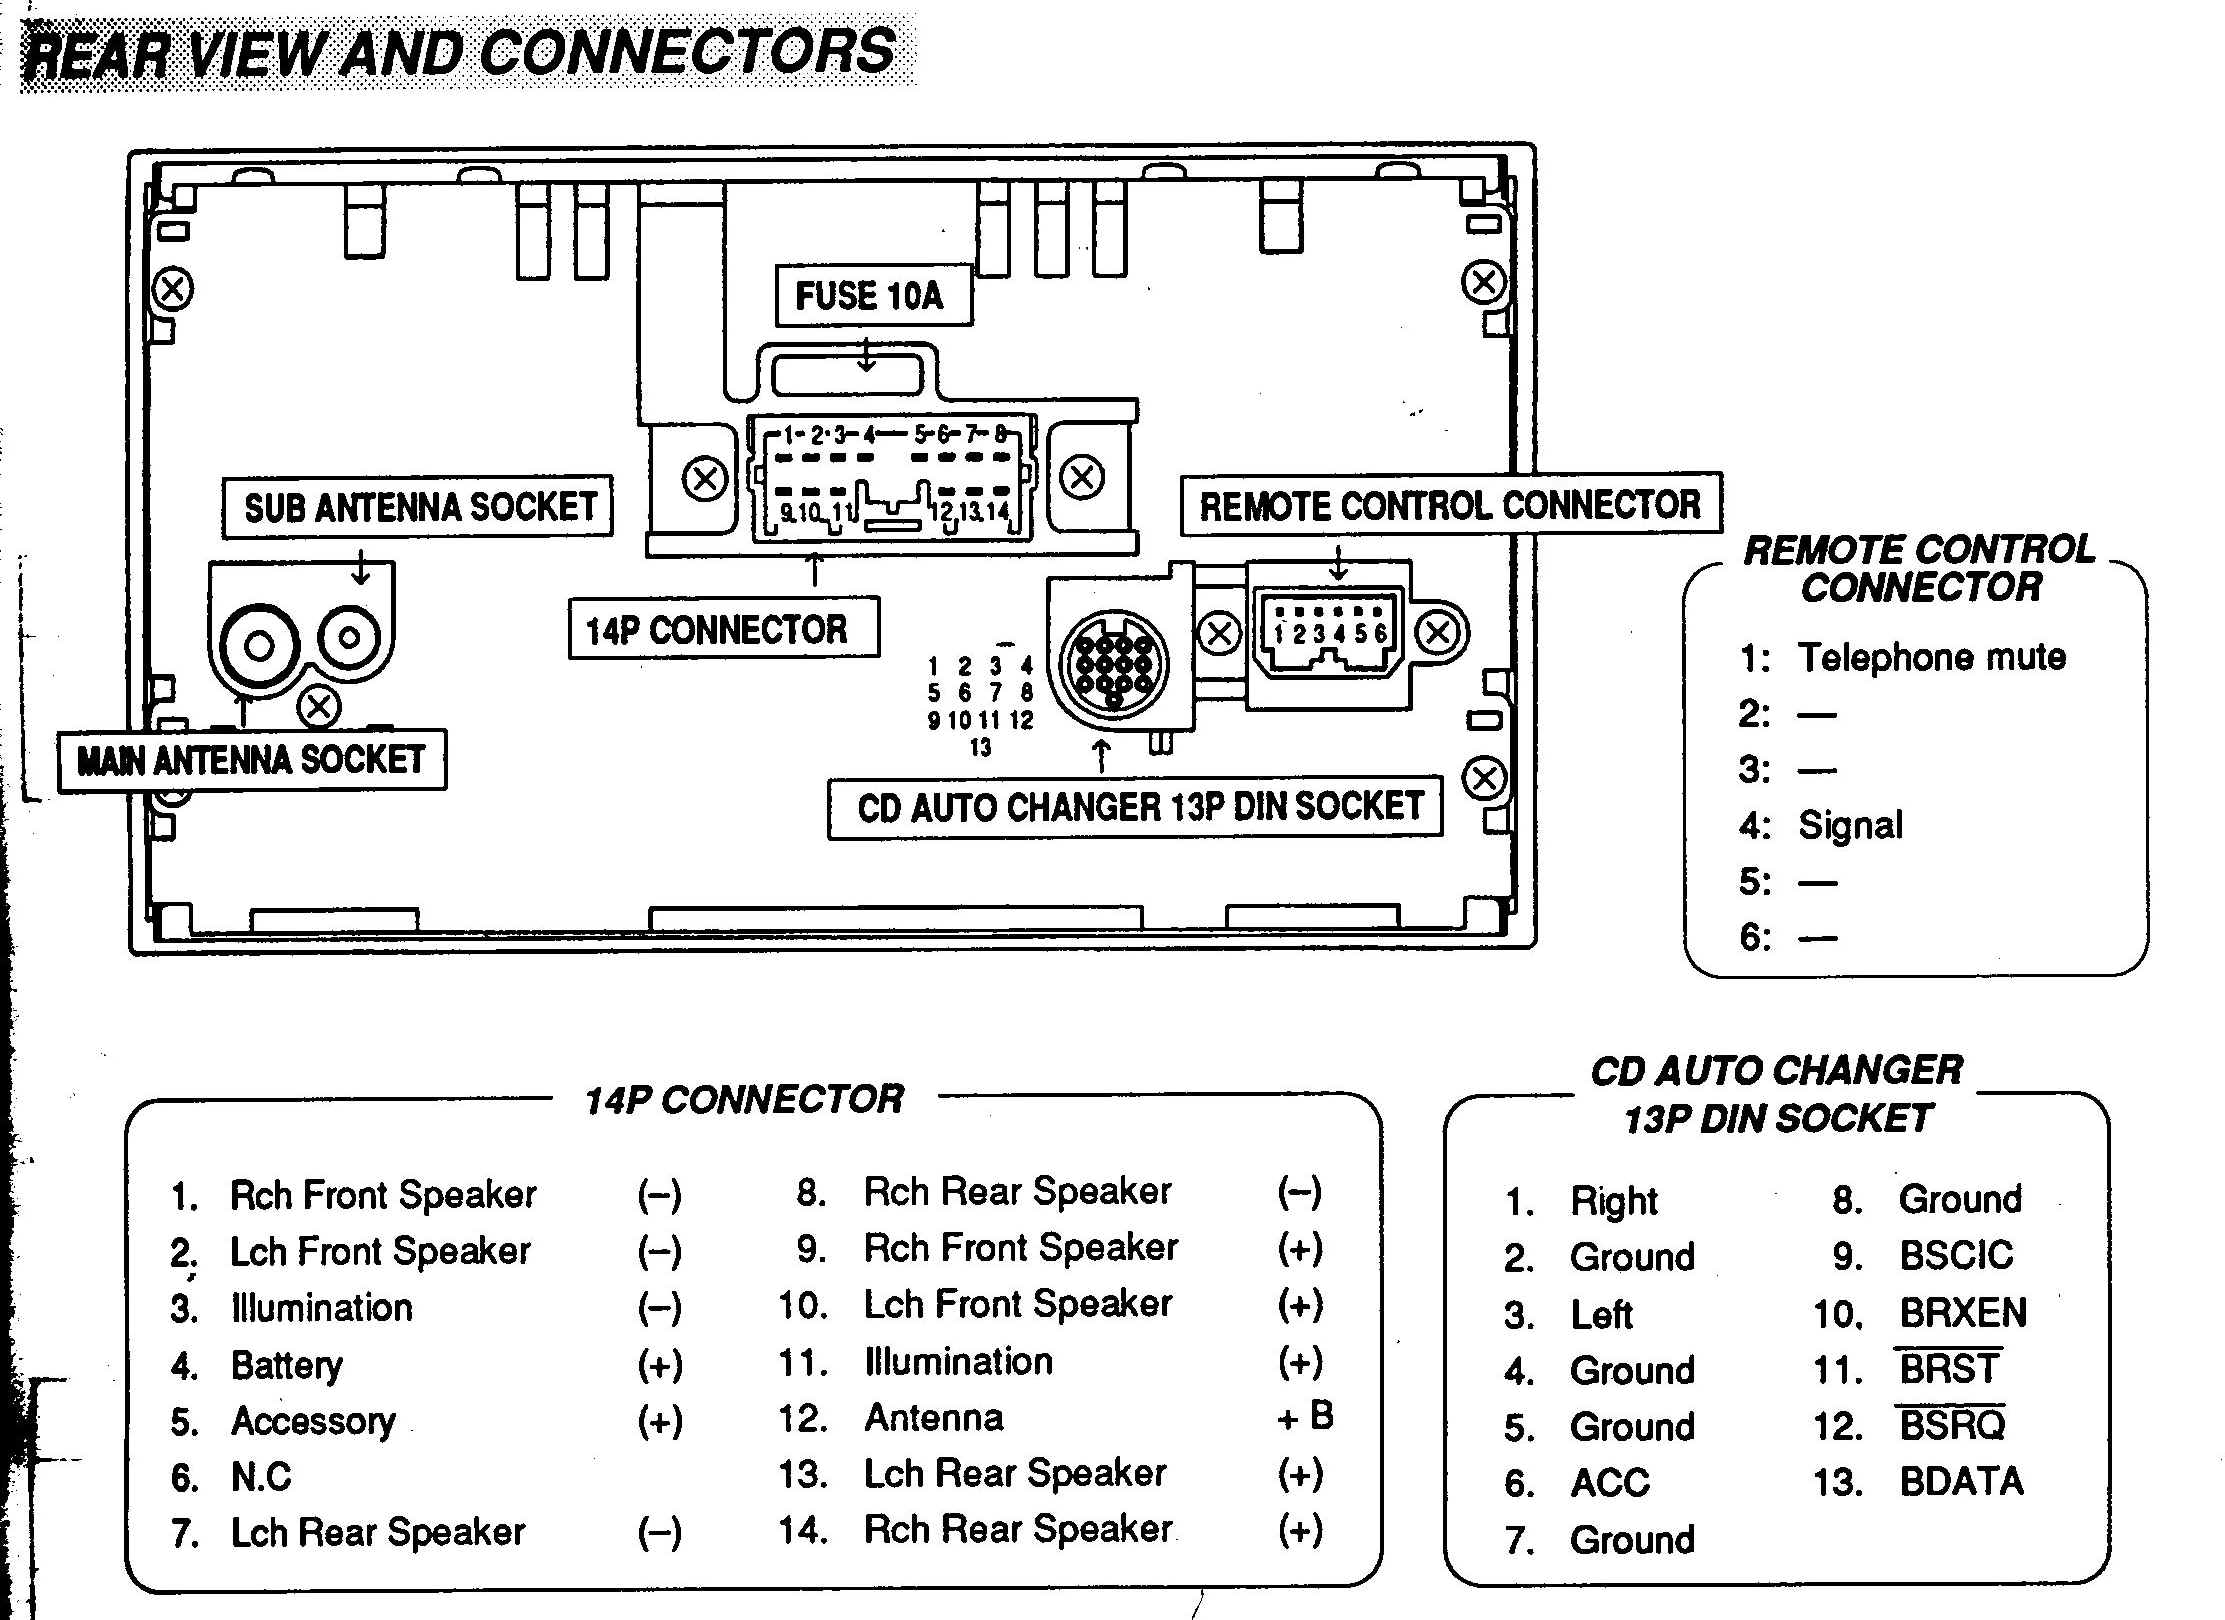 WireHarnessMit121003 radio wiring diagram smart wiring diagrams instruction 2000 jaguar s type radio wire diagram at bakdesigns.co